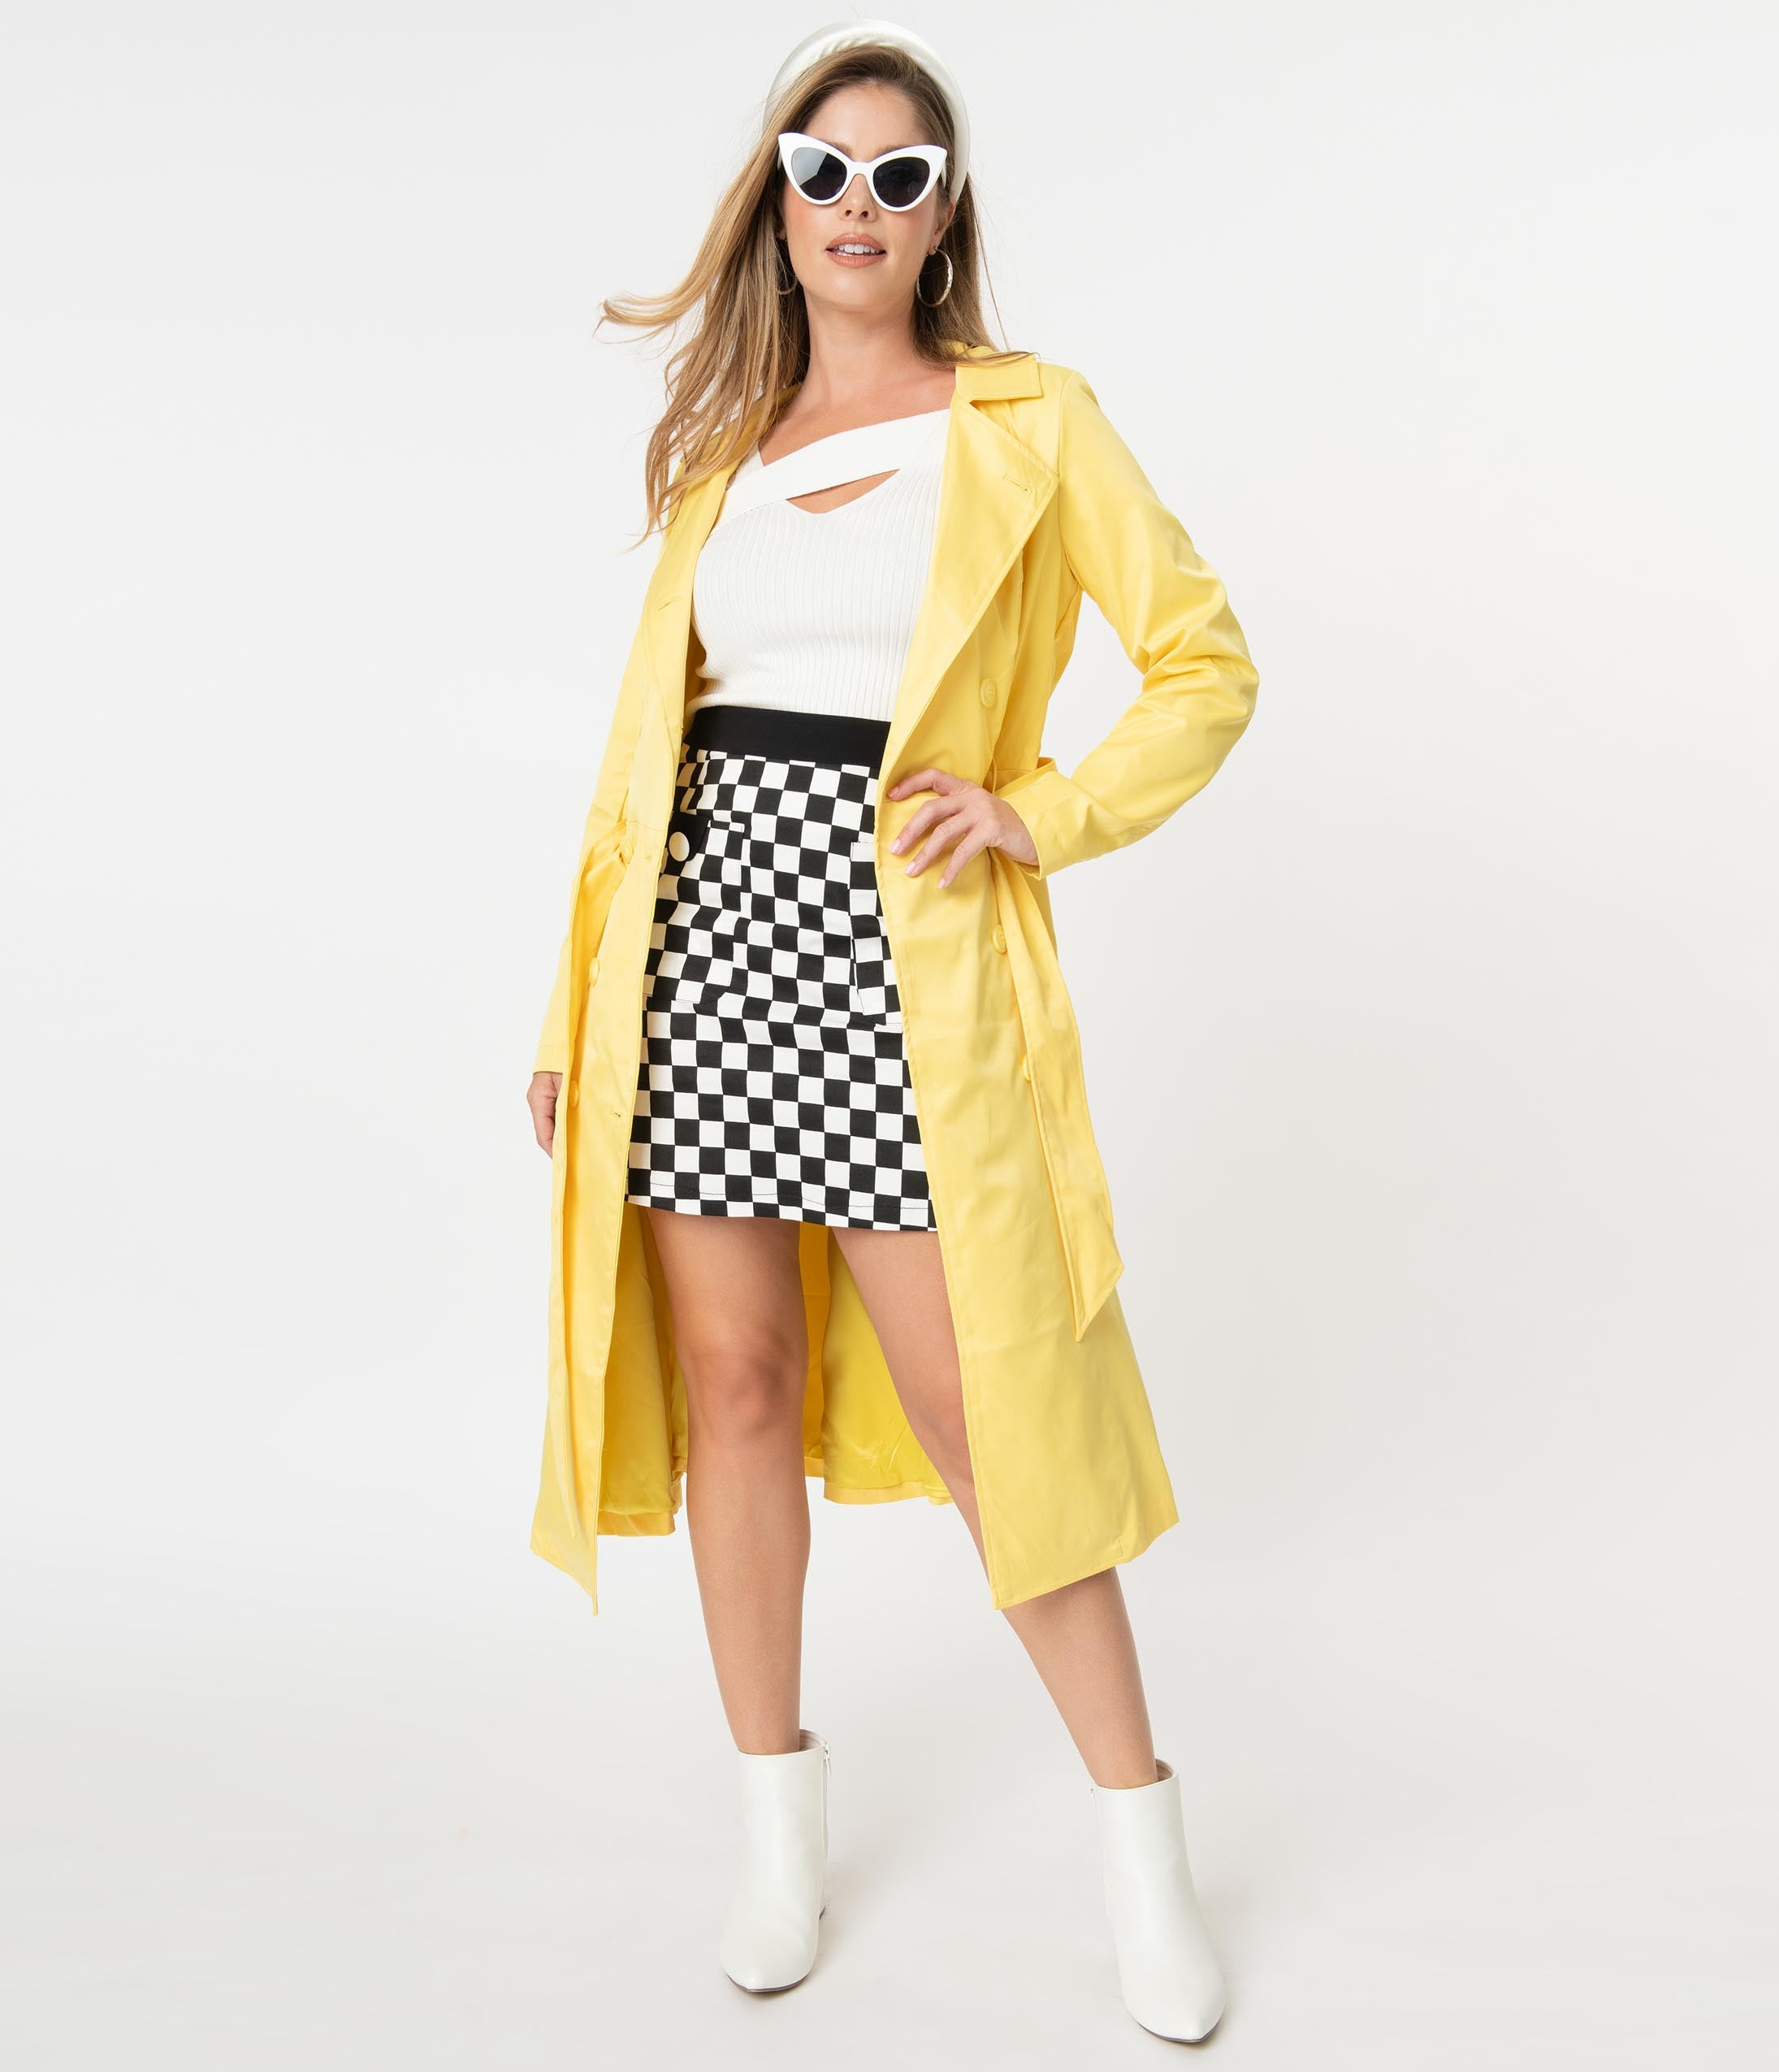 Vintage Coats & Jackets | Retro Coats and Jackets Collectif Retro Style Yellow Korrina Trench Coat $150.00 AT vintagedancer.com